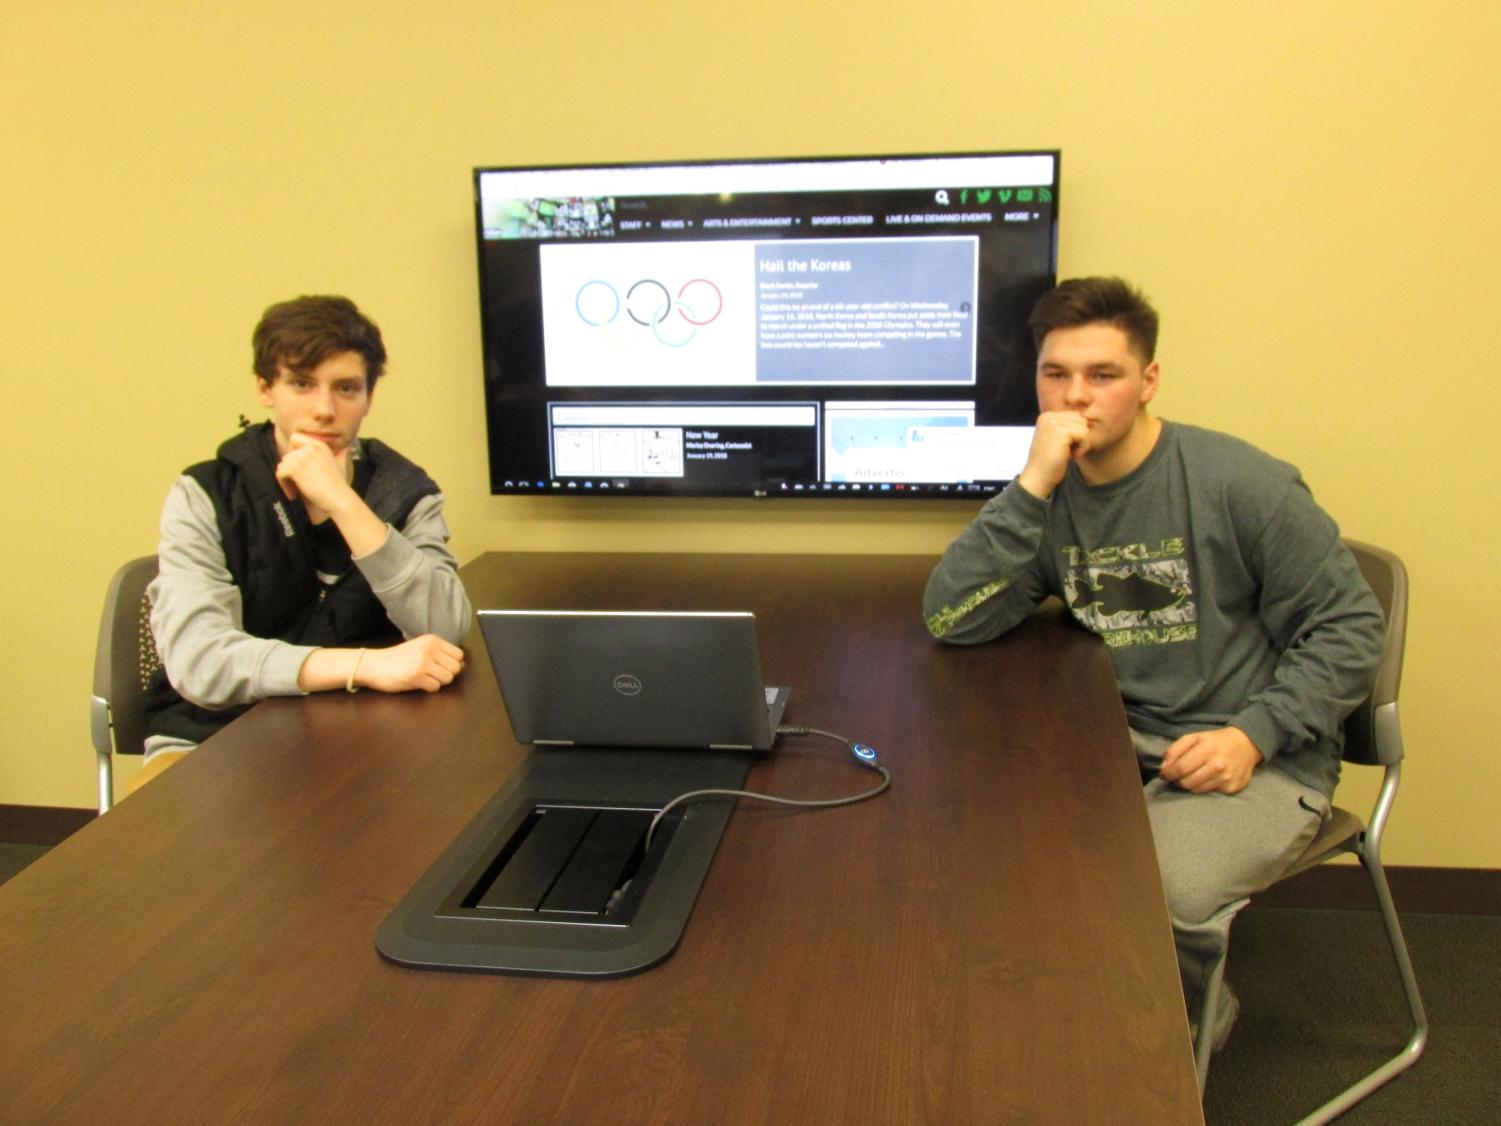 We're Live! Meridian Hawks journalism class will have their first live news show on February 2, airing at 2:05 pm.  Drew Snow and Spencer Litteral, who've previously been accustomed to pre-filming the show, will make this important transition--without the benefit of multiple takes.